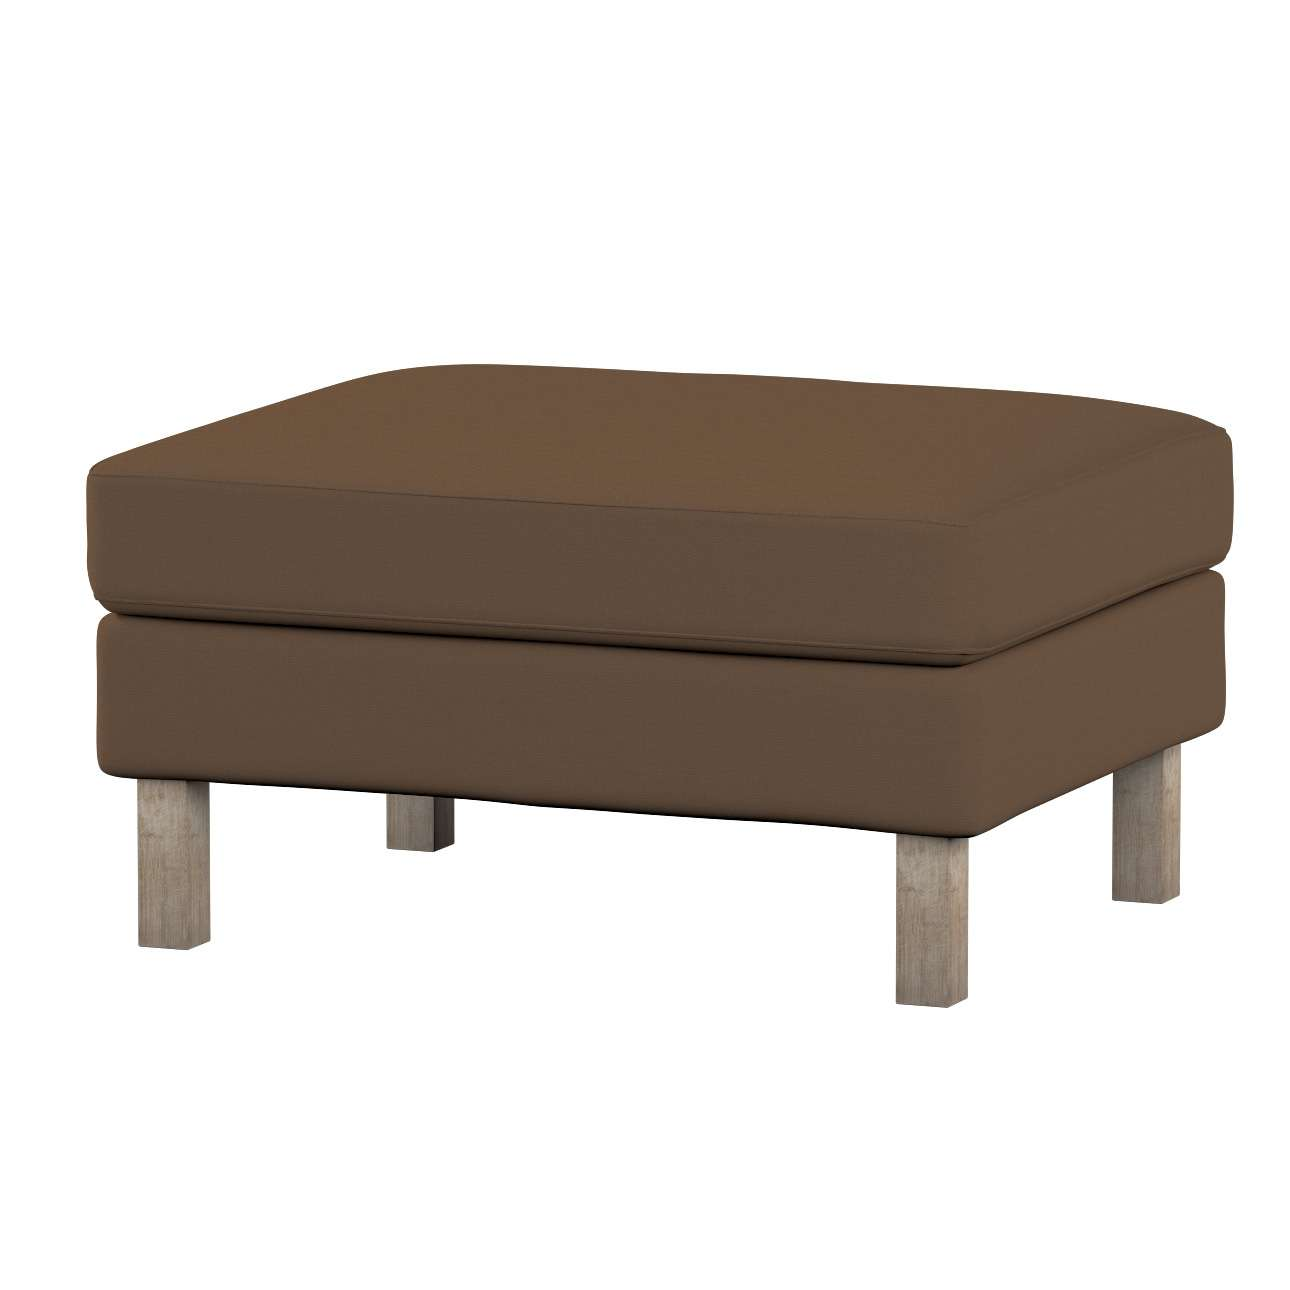 Karlstad footstool cover Karlstad footstool cover in collection Cotton Panama, fabric: 702-02